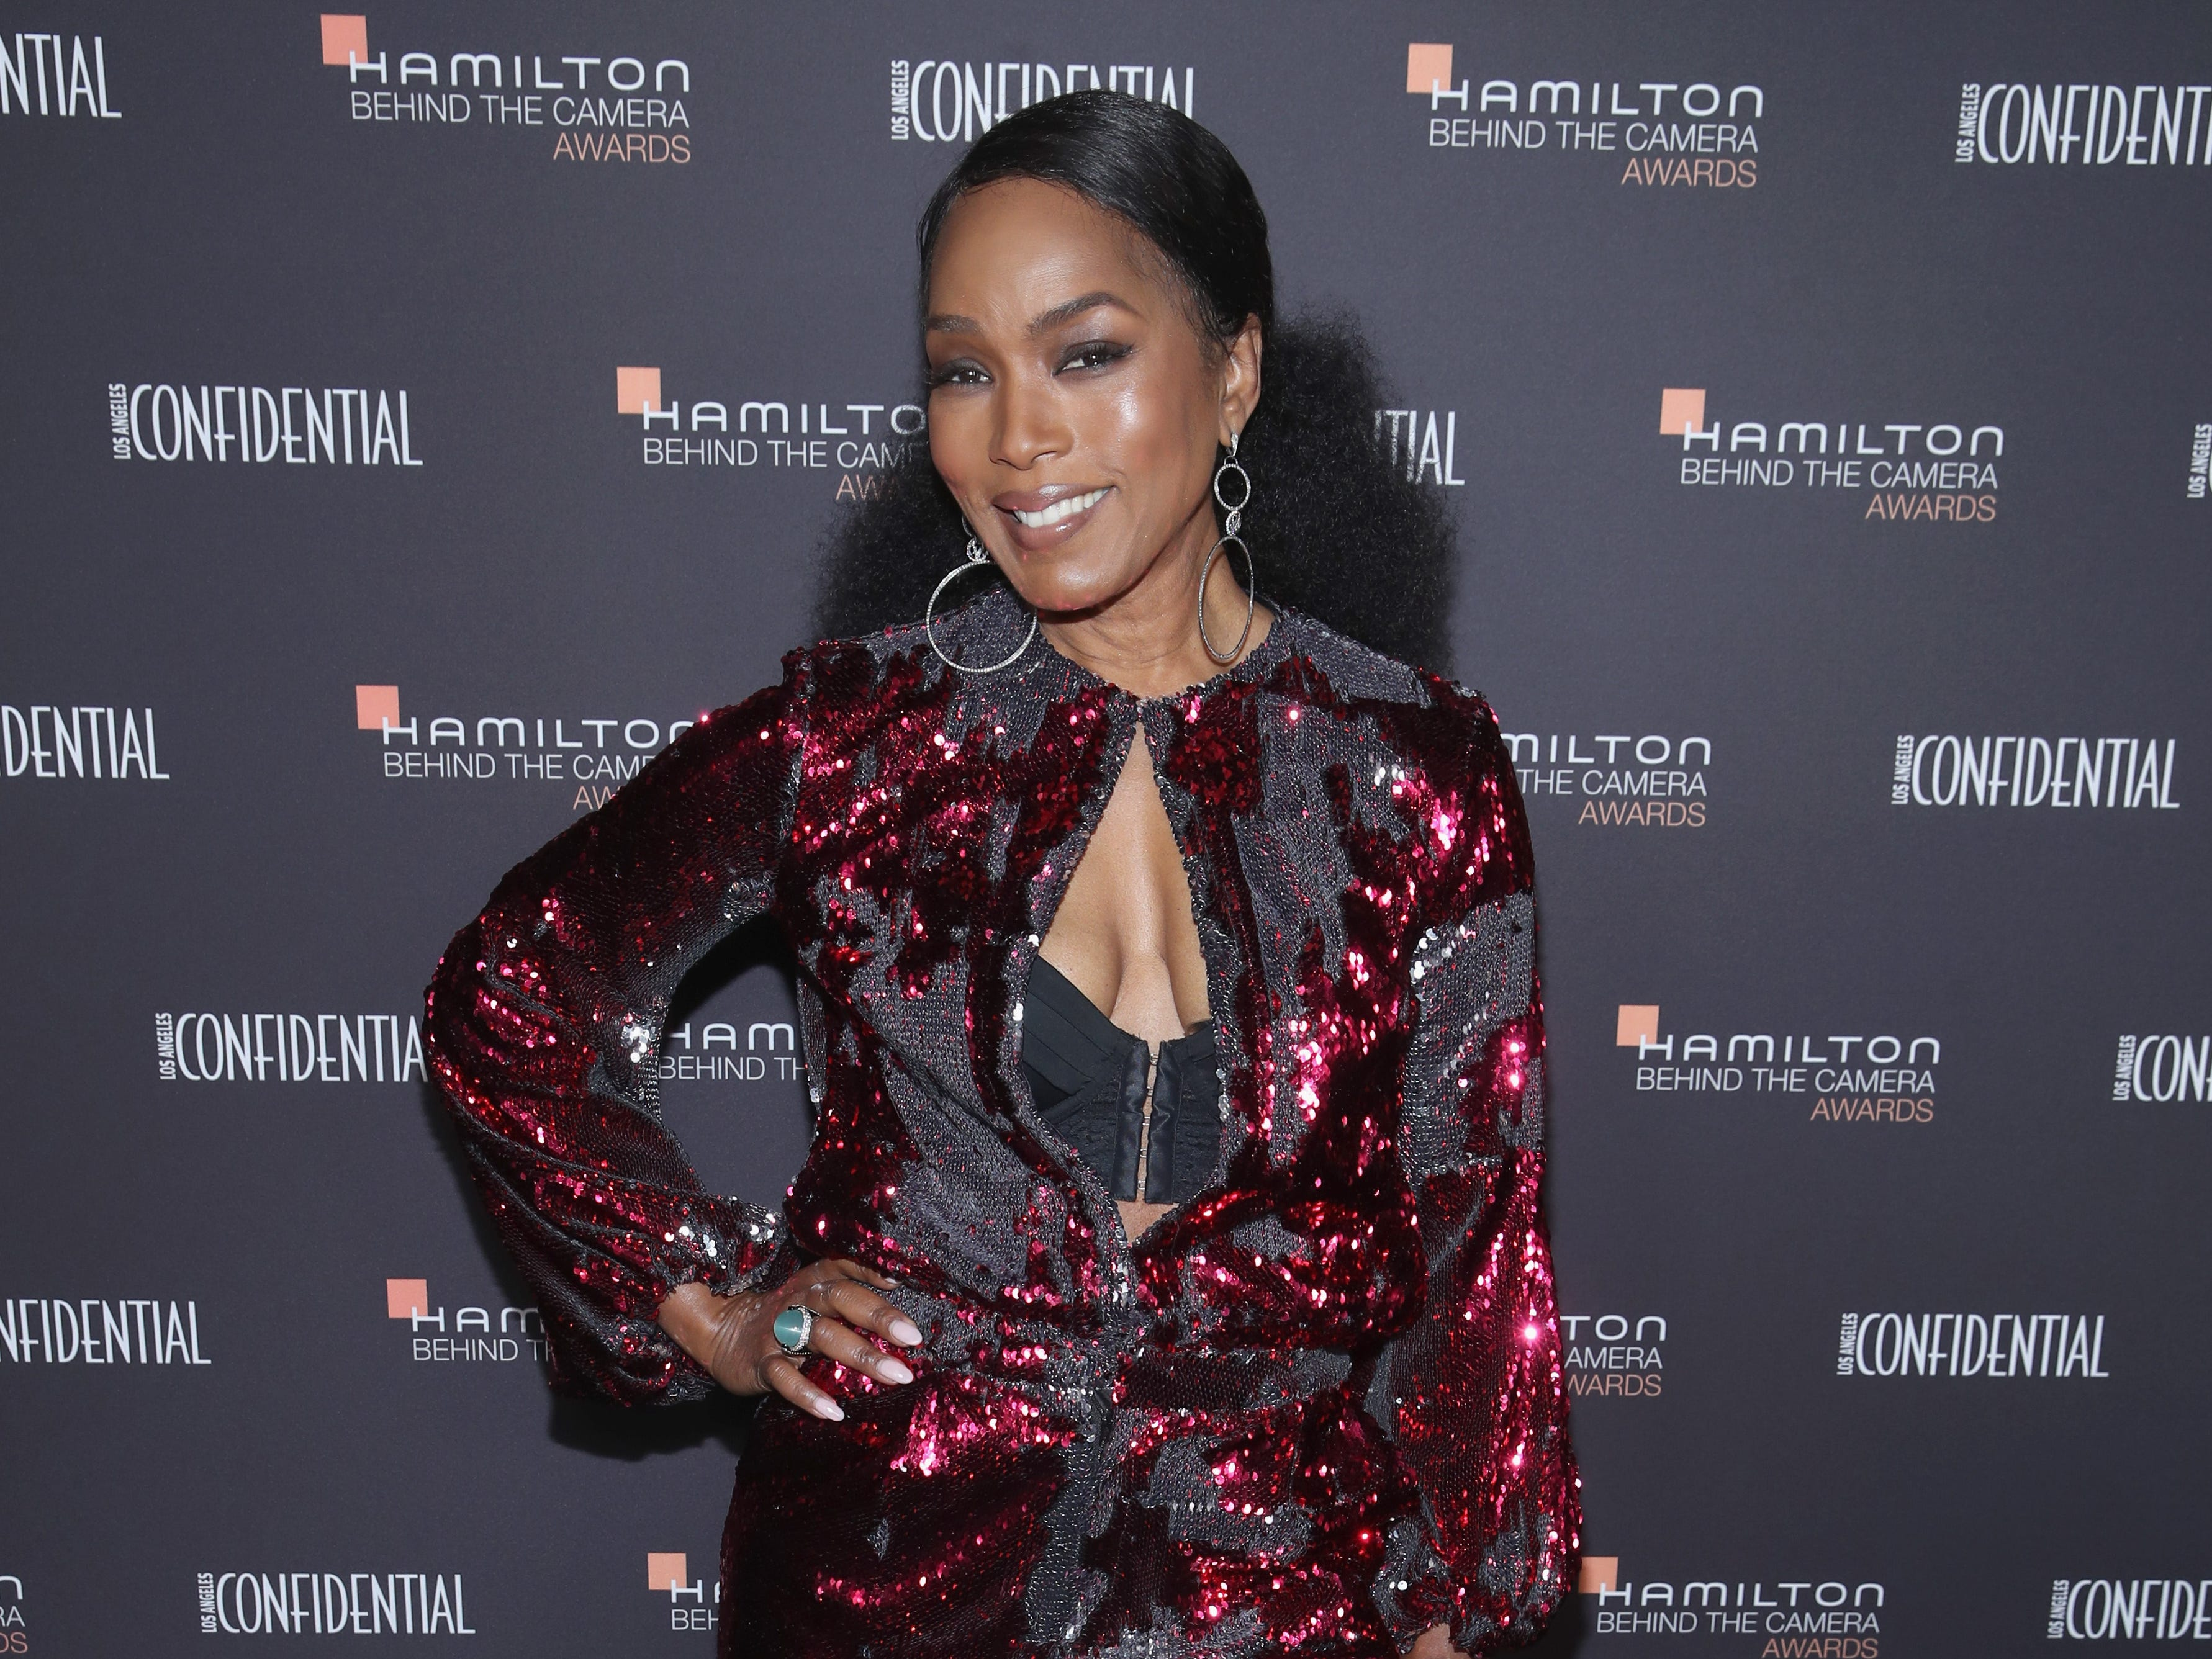 LOS ANGELES, CA - NOVEMBER 04:  Angela Bassett attends the Hamilton Behind the Camera Awards presented by Los Angeles Confidential Magazine on November 4, 2018 in Los Angeles, California.  (Photo by Randy Shropshire/Getty Images for LA Confidential) ORG XMIT: 775251013 ORIG FILE ID: 1057529850